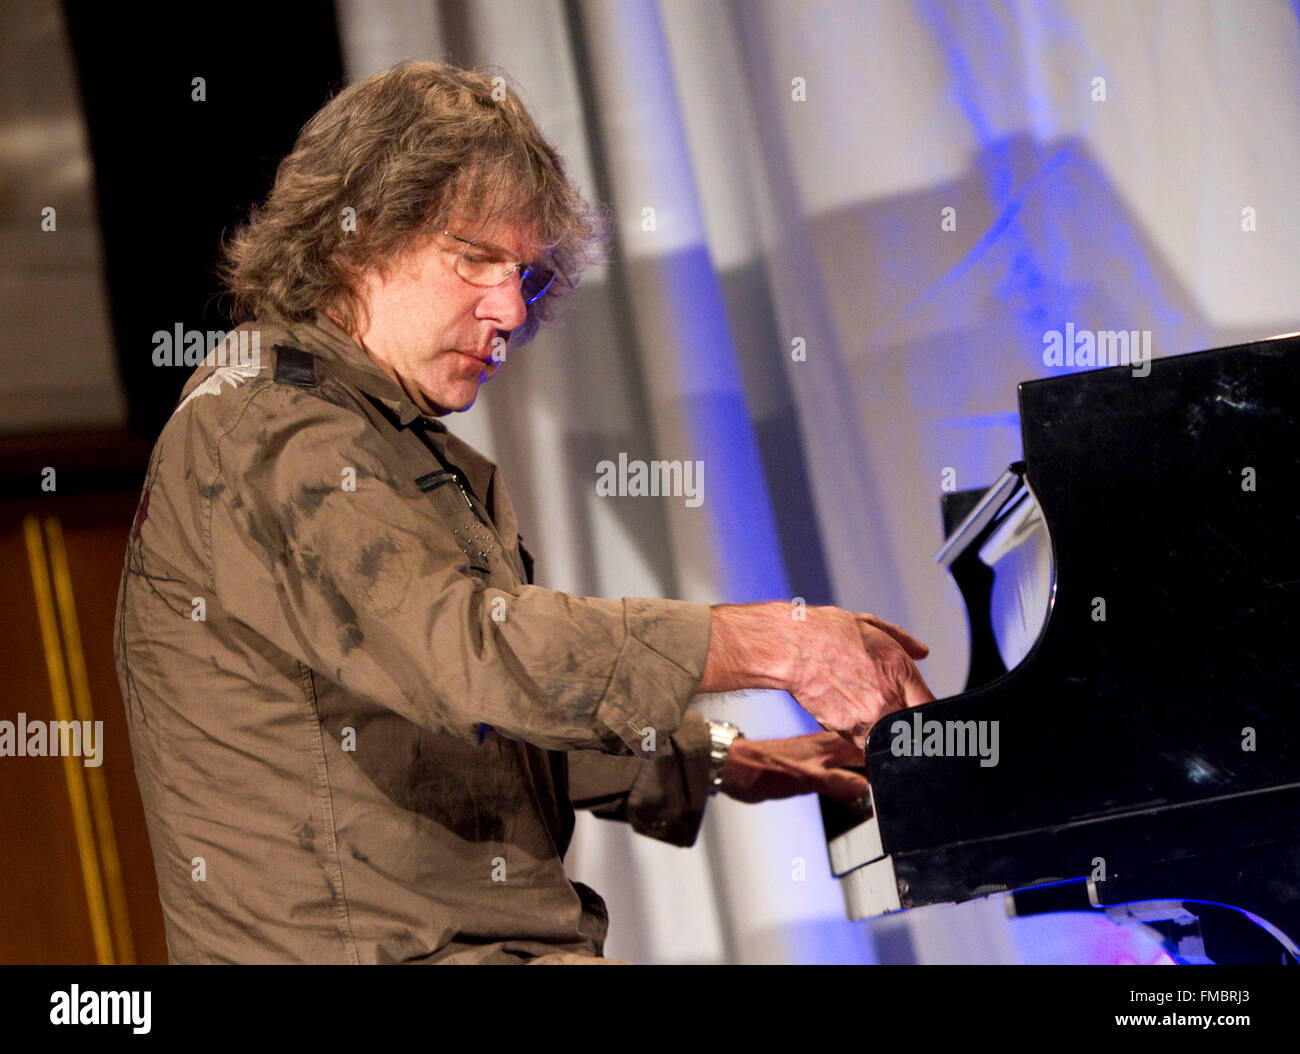 English keyboard player Keith Emerson plays the piano as he receives the Frankfurt Music Prize 2010 in Frankfurt Stock Photo